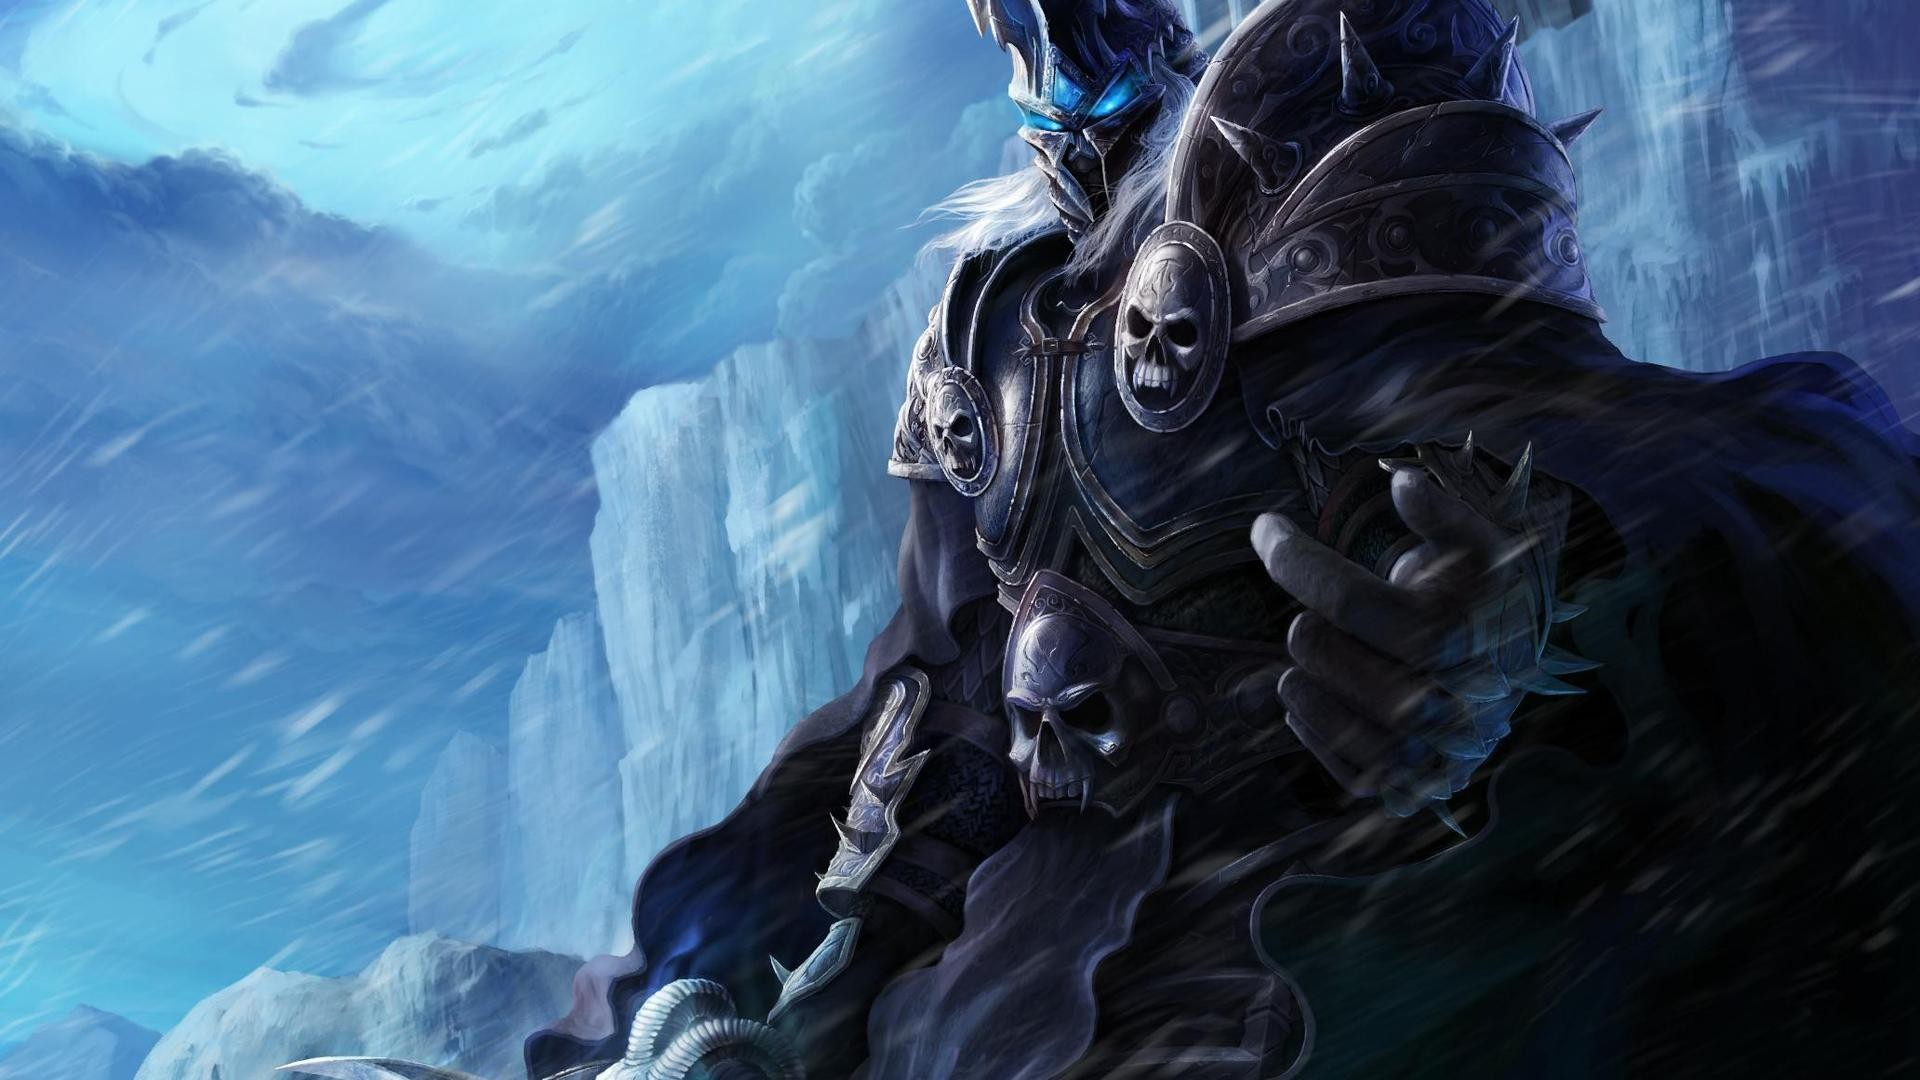 Free Download World Of Warcraft Hd Wallpaper Pack 1 1920x1080